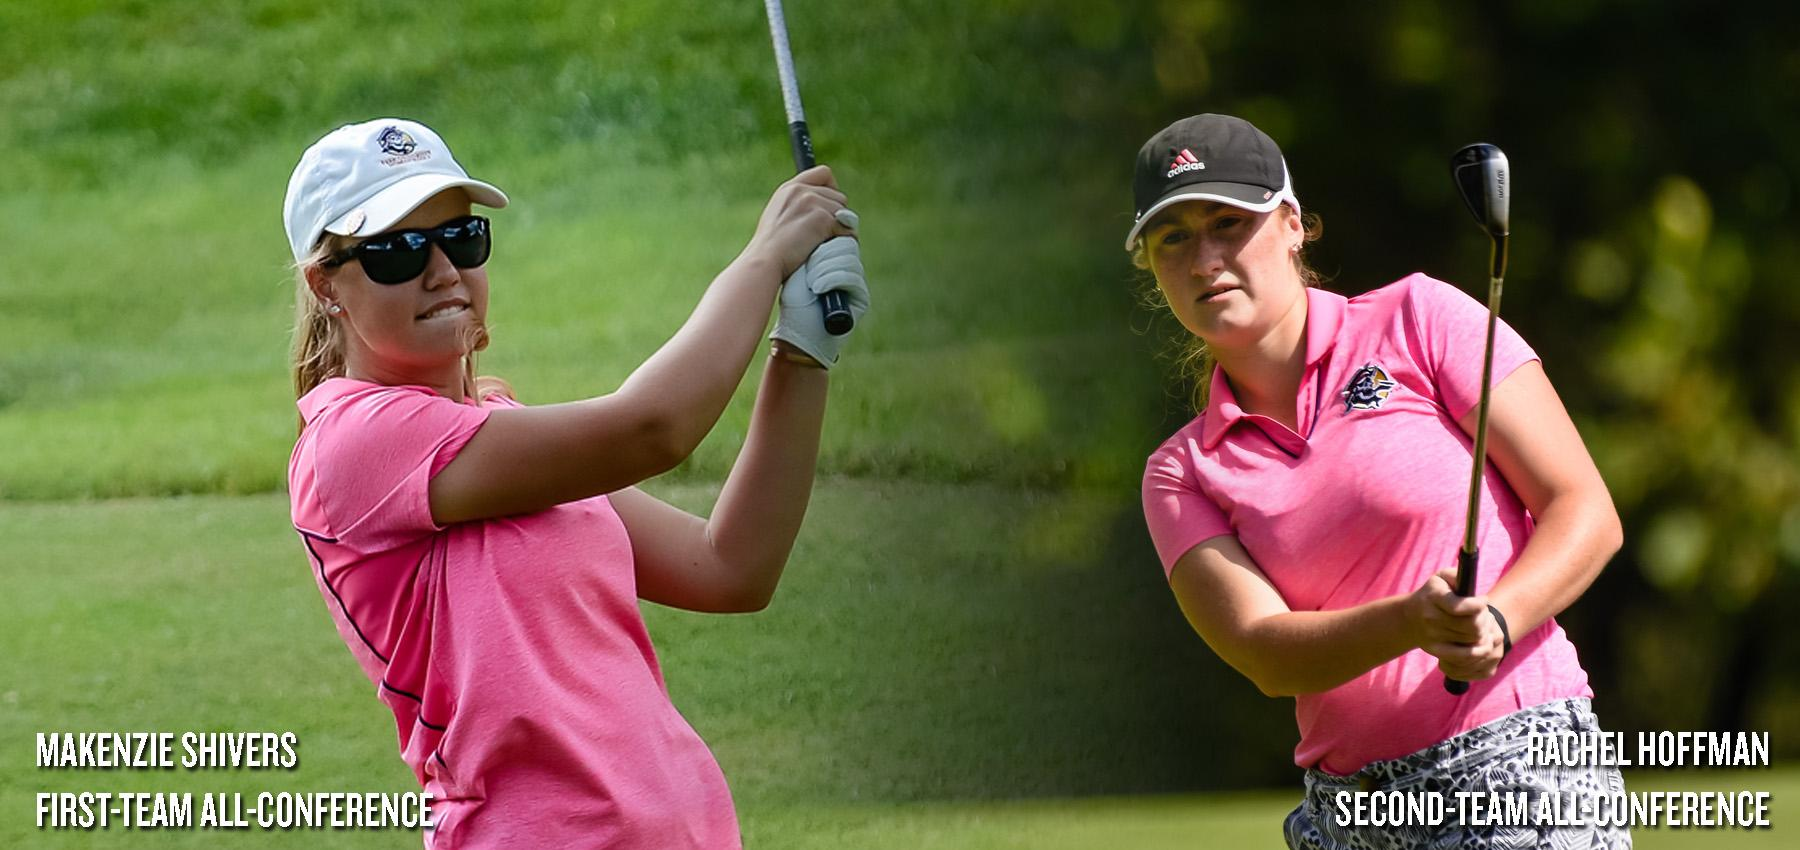 Pirate Pair Earns Women's Golf All-Conference Honors to Close 2016-17